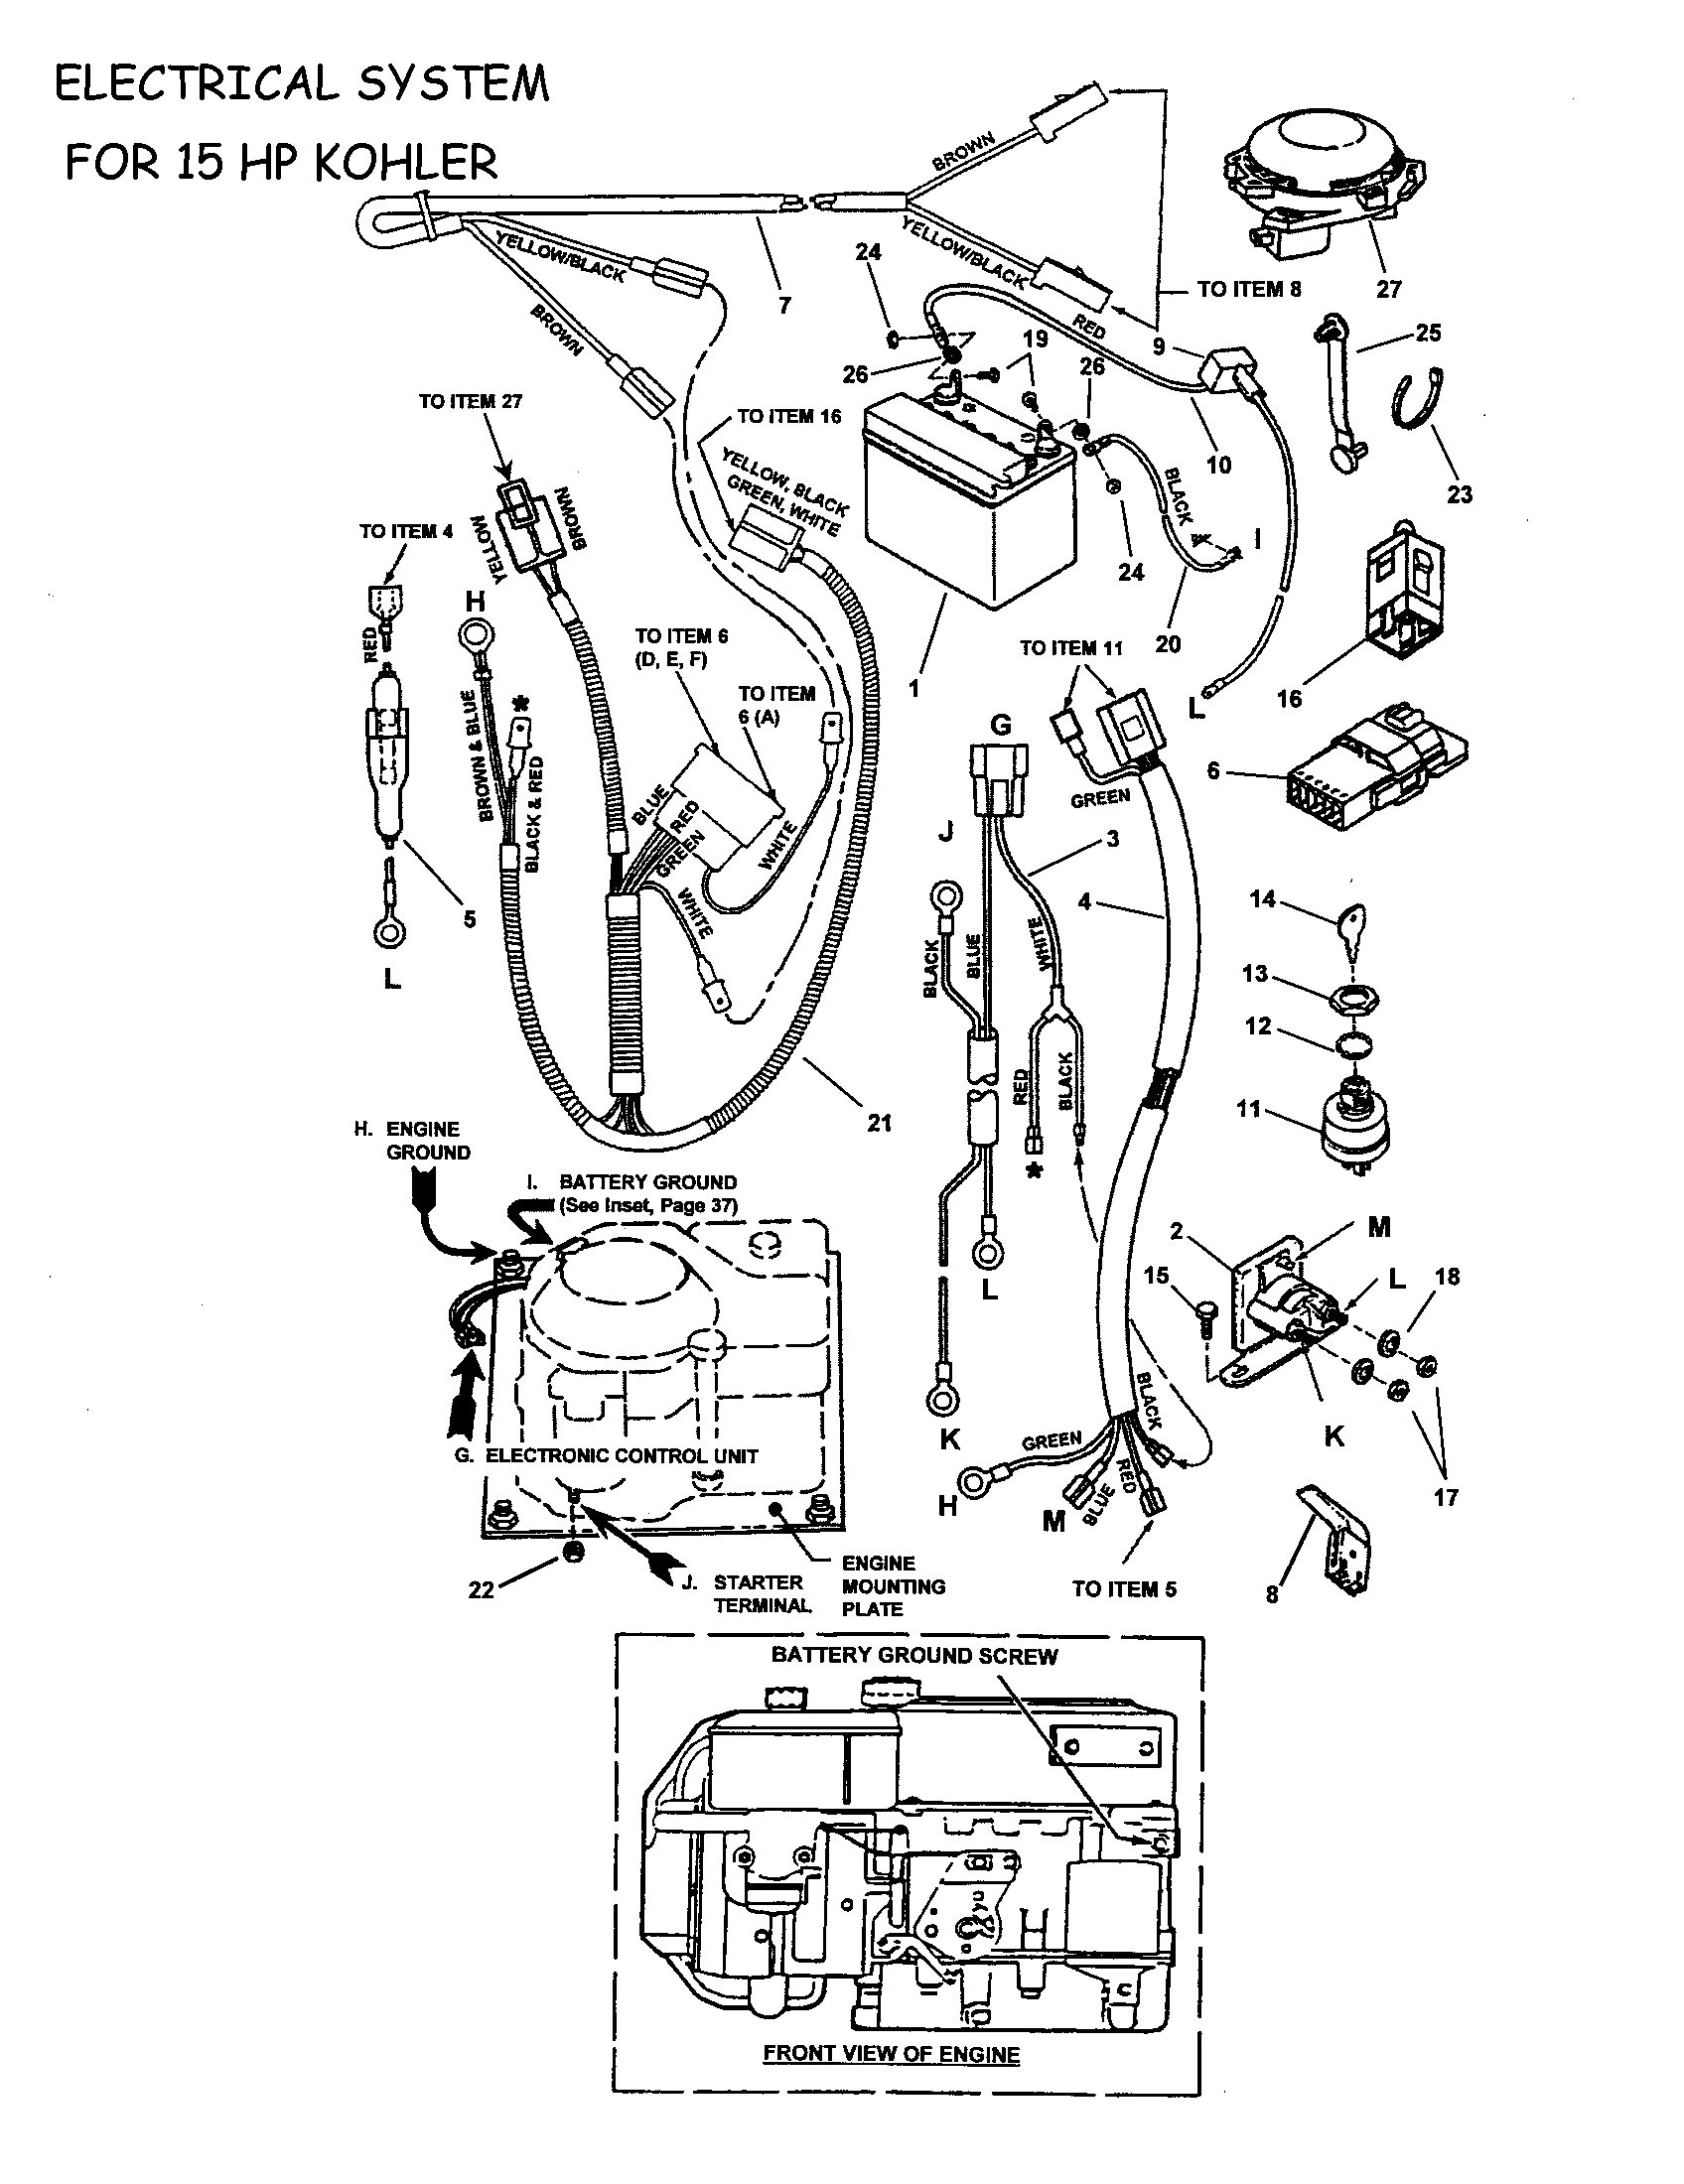 ELECTRICAL SYSTEMS Diagram & Parts List for Model 281022be